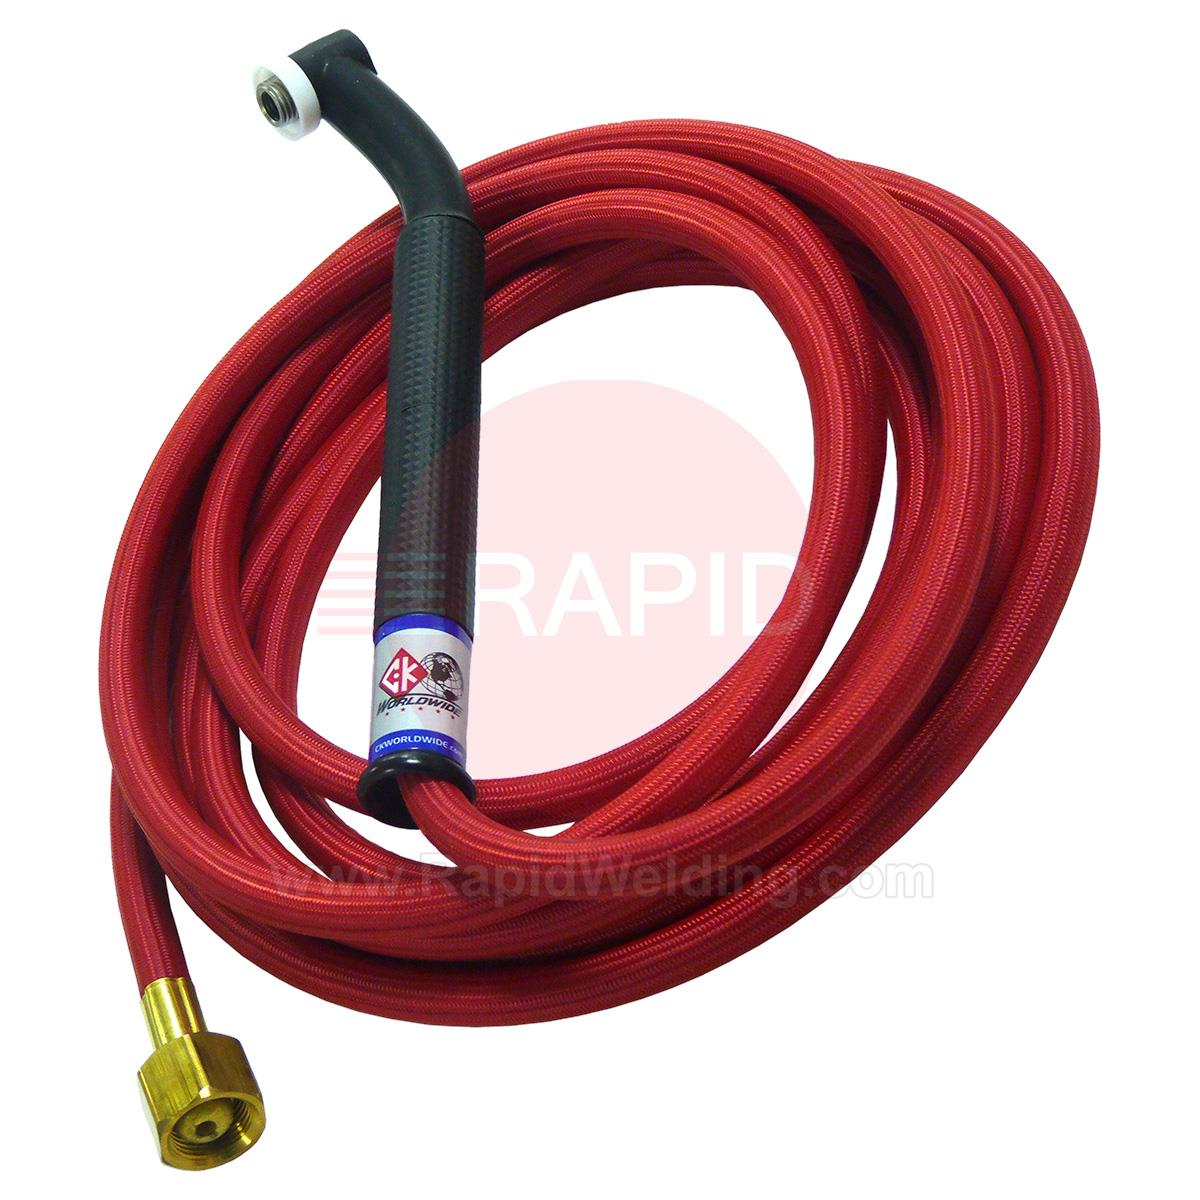 CK-CK2412RSFFX  CK24 Flex Head Gas cooled 80 amp Tig Torch With 1pc 4m Superflex Cable. 3/8 BSP